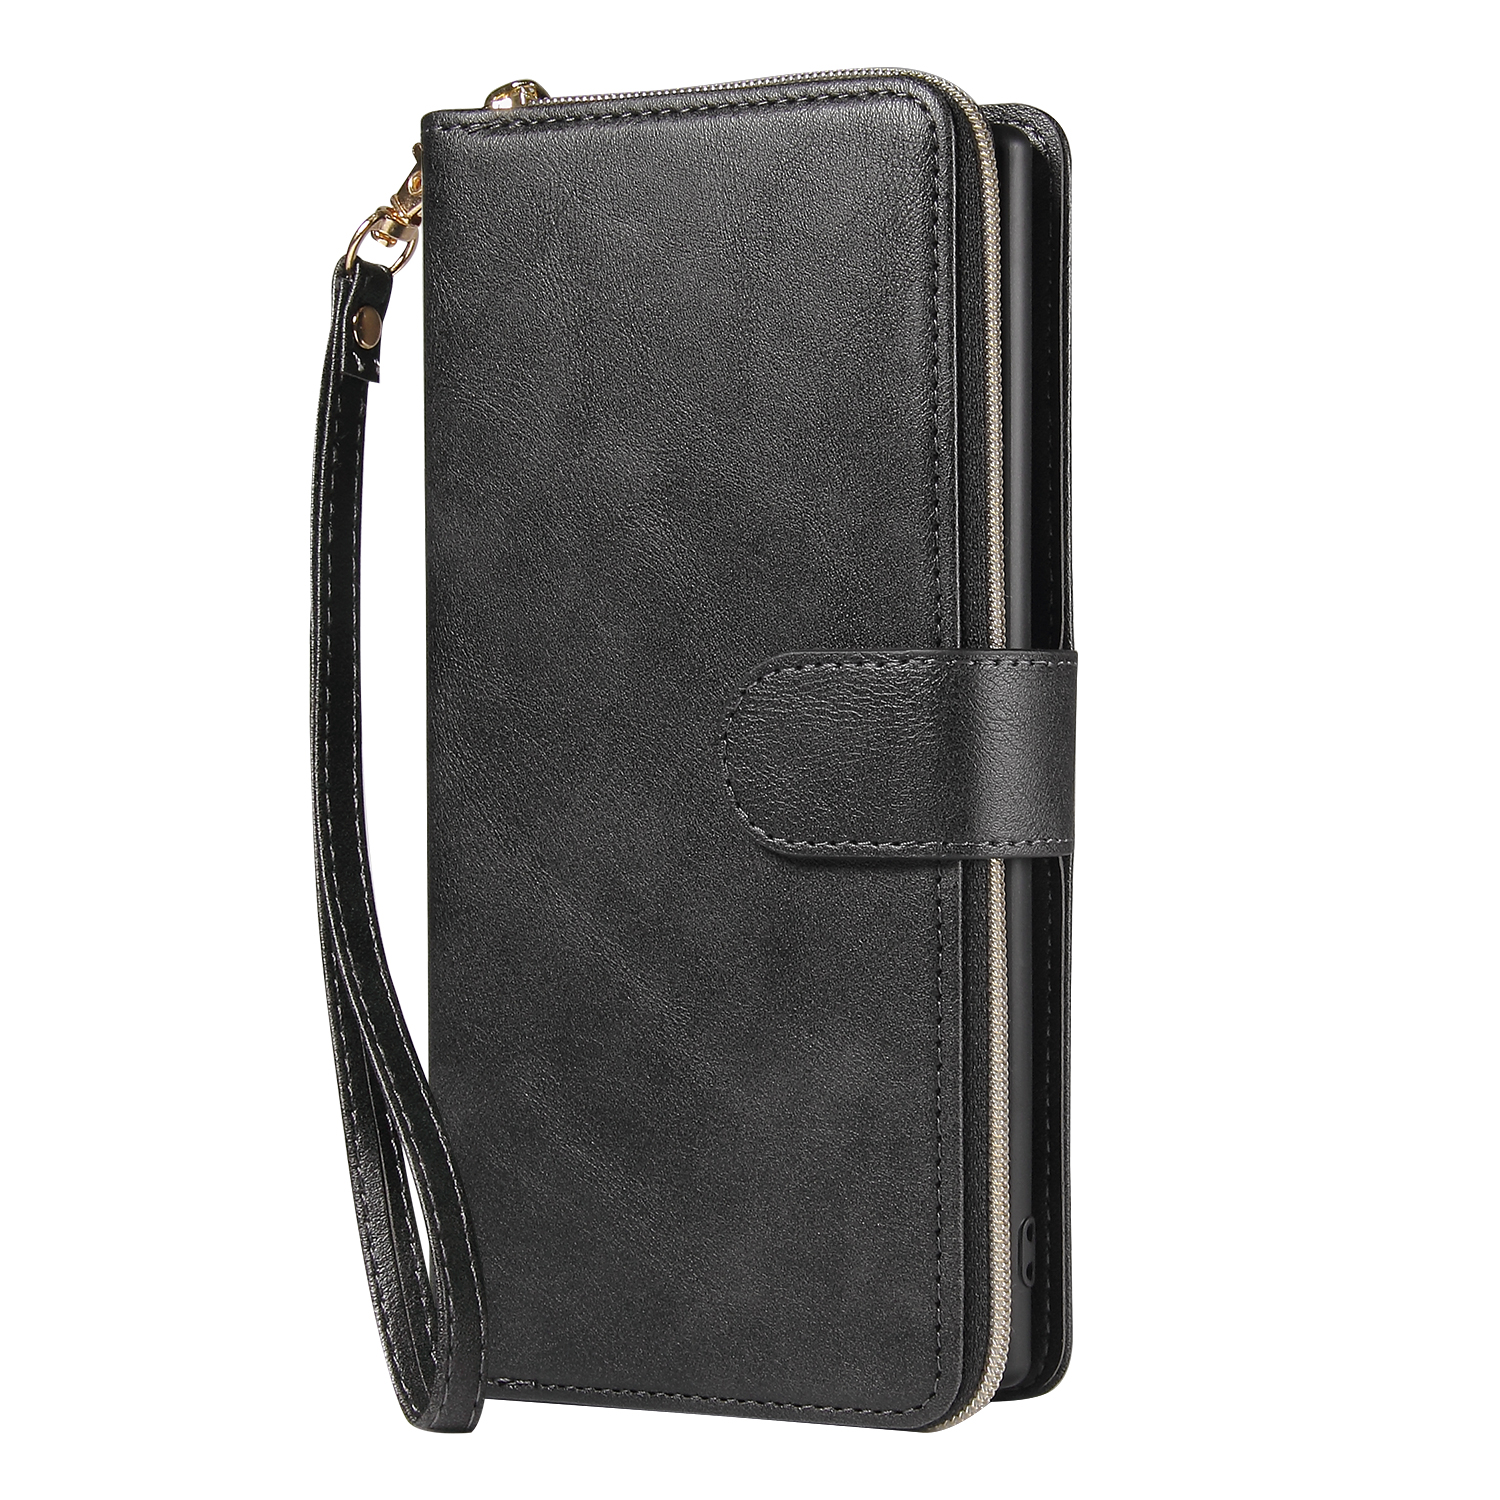 For Samsung A51 5G/A71 5G/Note 10 pro Pu Leather  Mobile Phone Cover Zipper Card Bag + Wrist Strap black